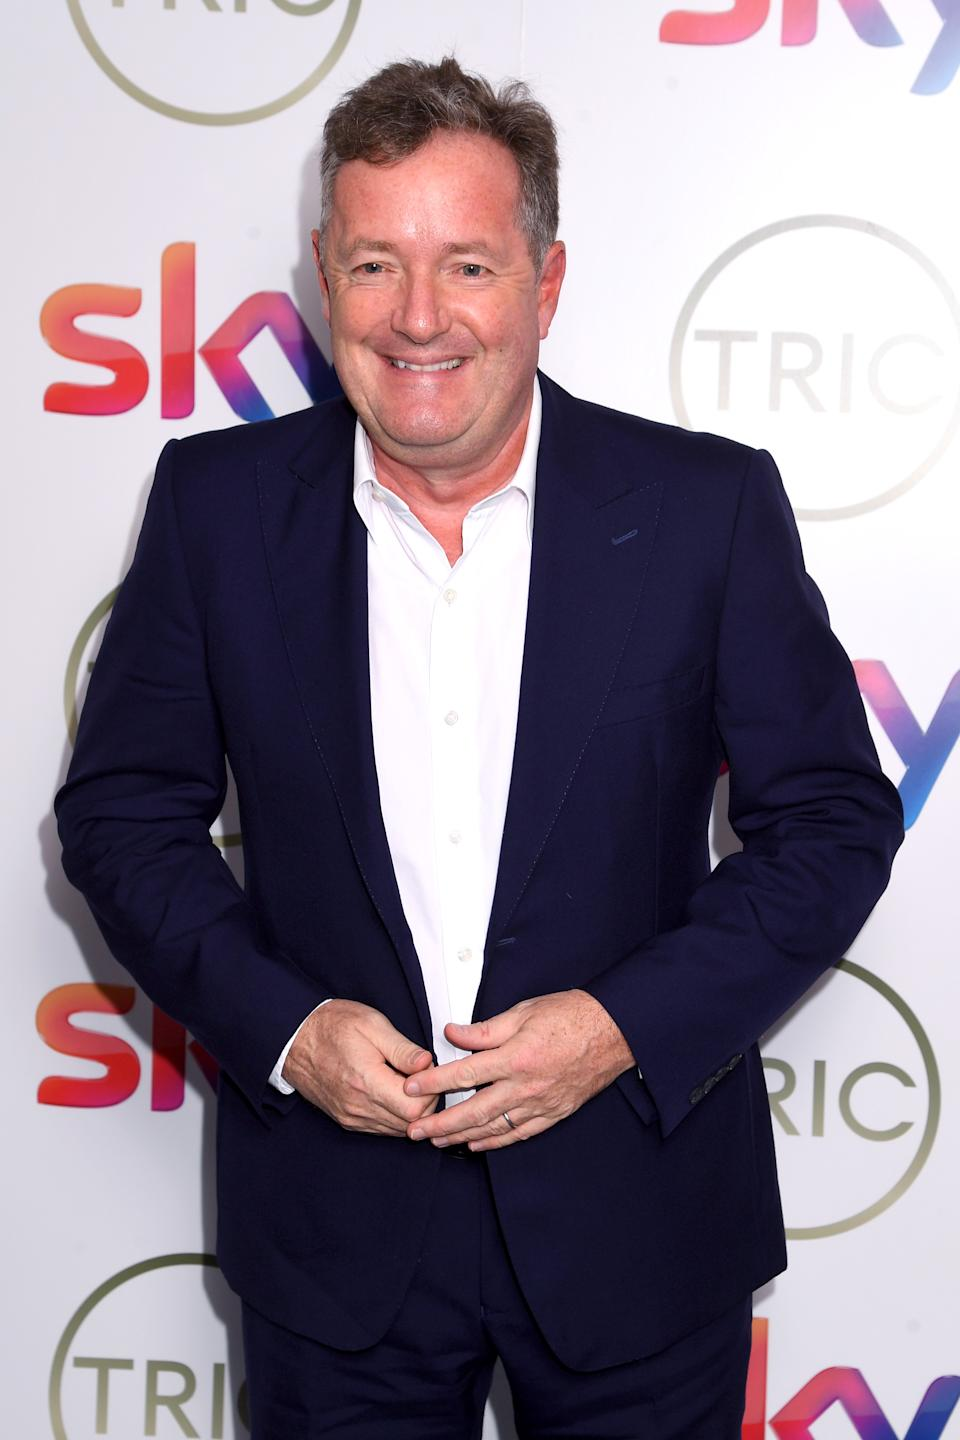 Piers Morgan attends the TRIC Awards 2020 at The Grosvenor House Hotel on March 10, 2020 in London, England. (Photo by Dave J Hogan/Getty Images)